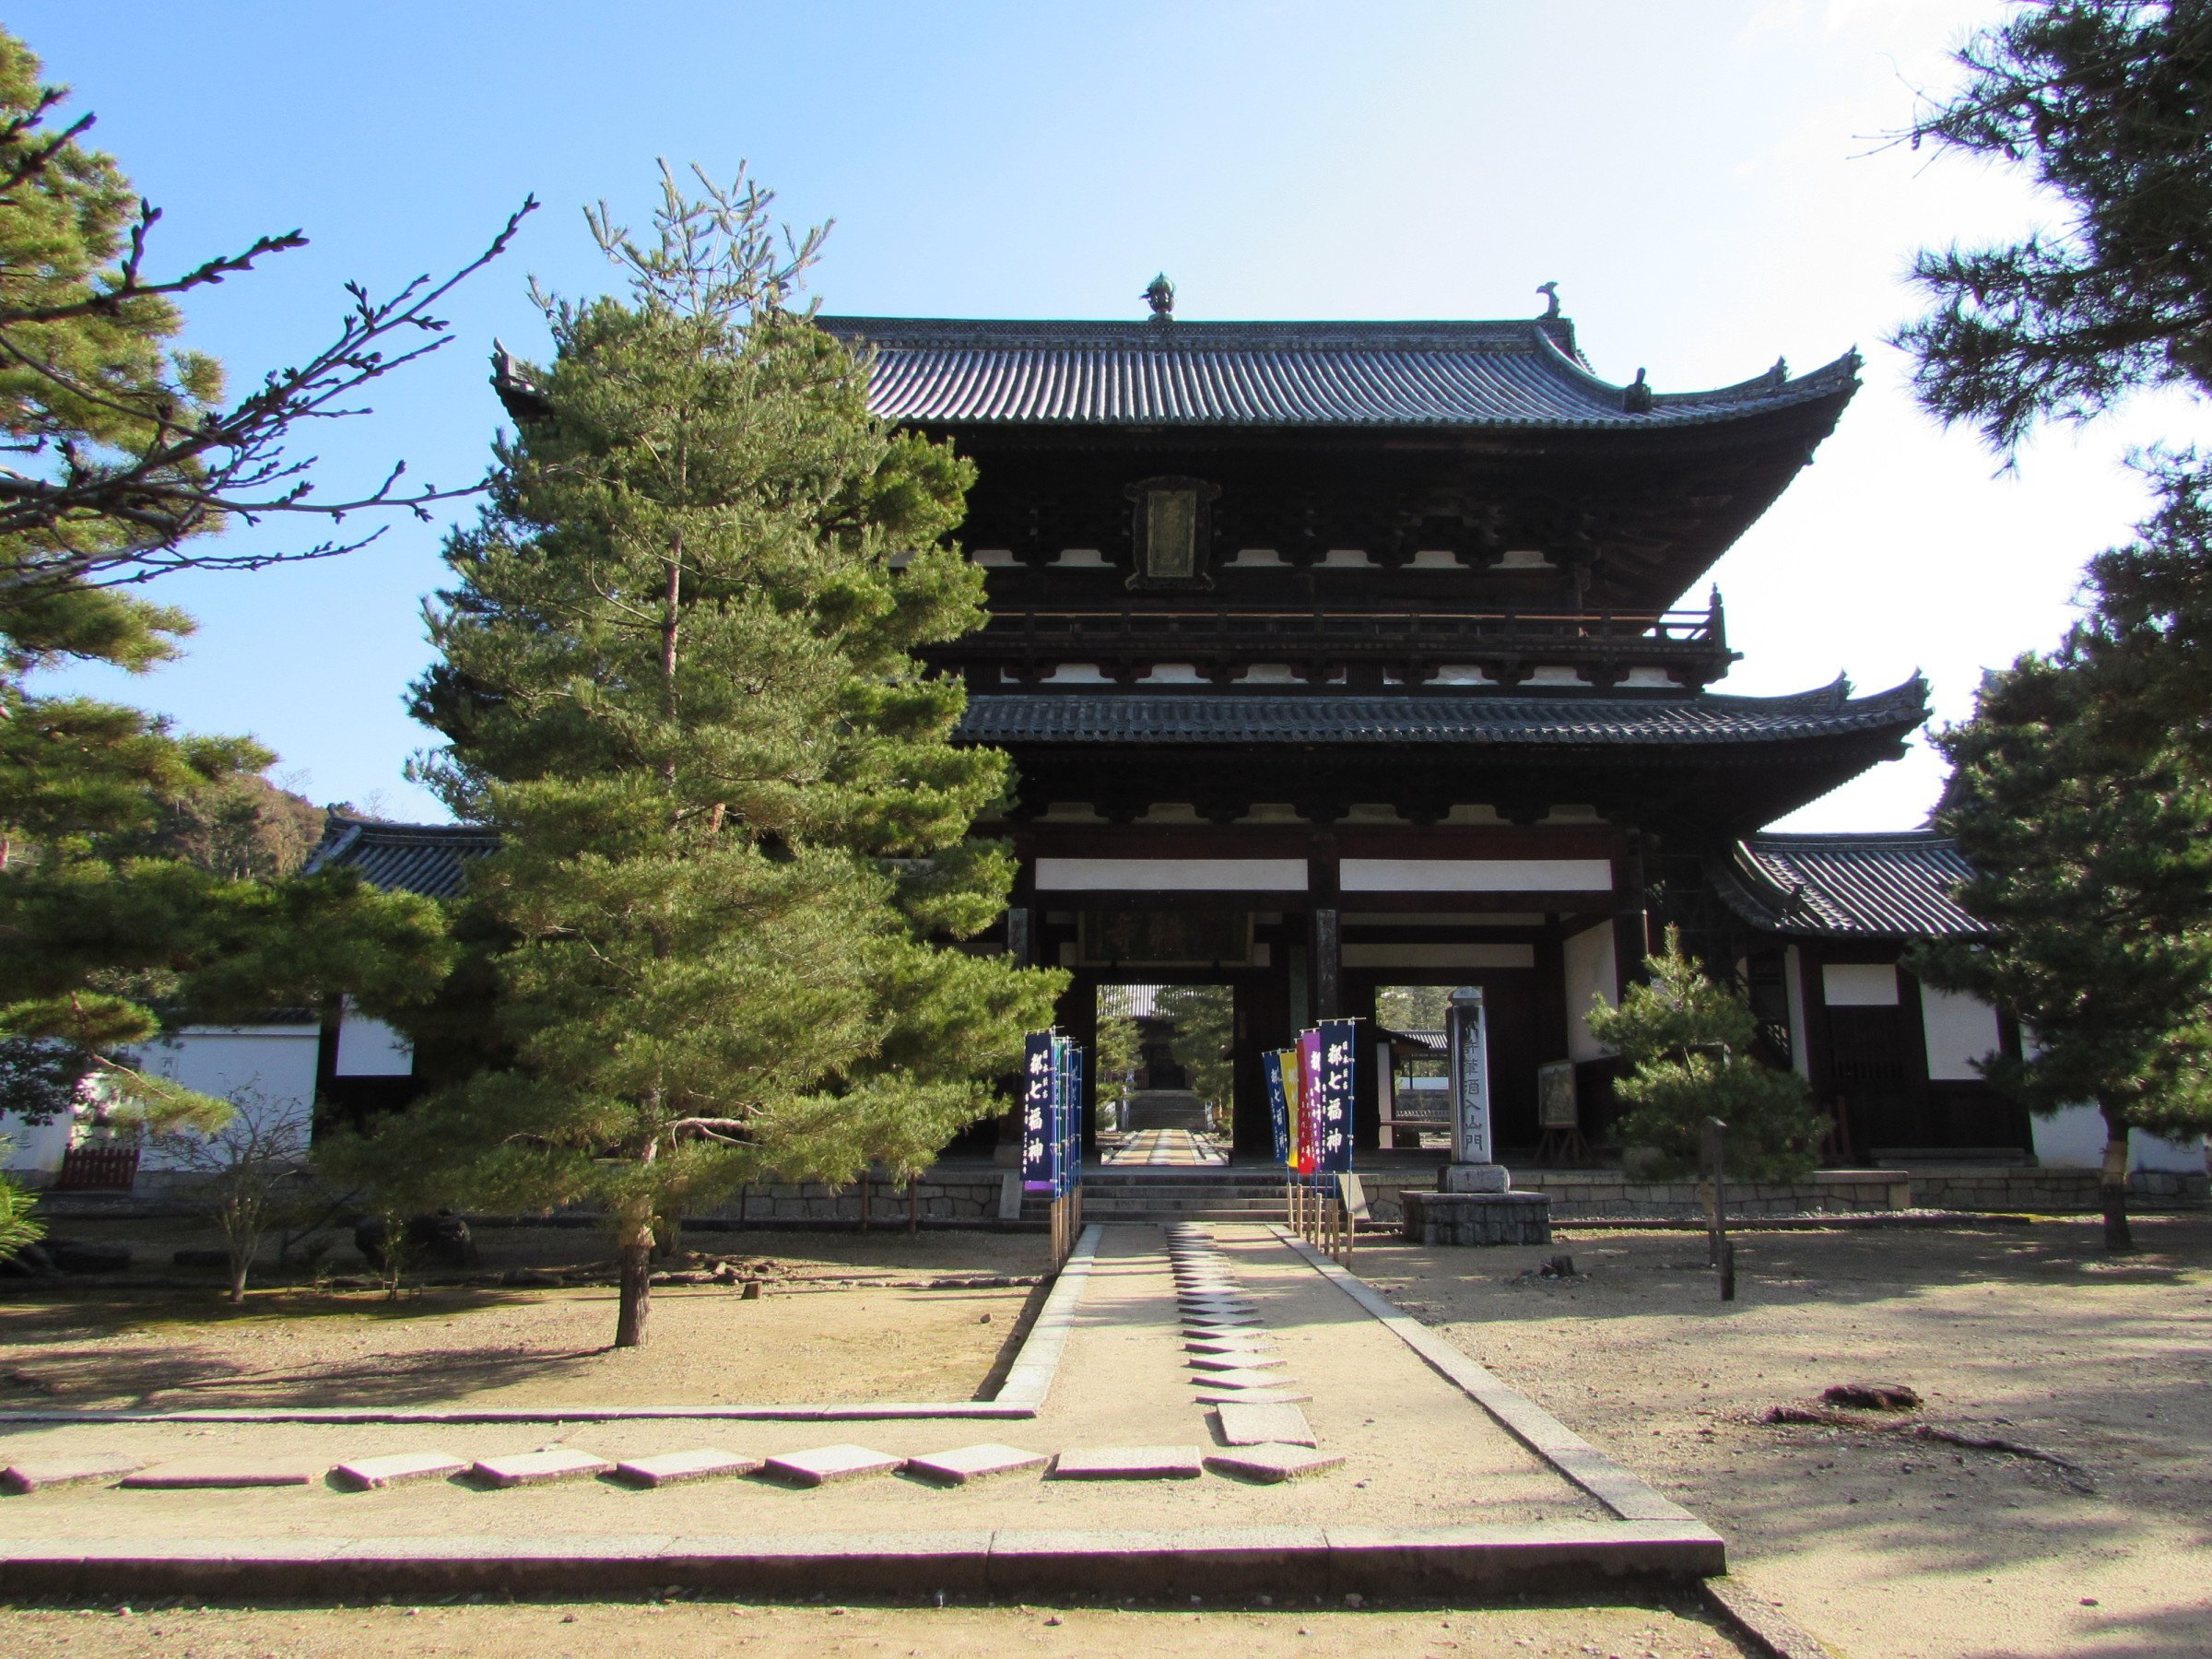 On entering the temple complex, you'll be greeted by the Sanmon - the 'Mountain Gate'. Even though many temples in Japan are not actually located on mountains, they are regarded as being on metaphorical peaks in keeping with the fact that most of the first Zen temples in China were located in such environs.